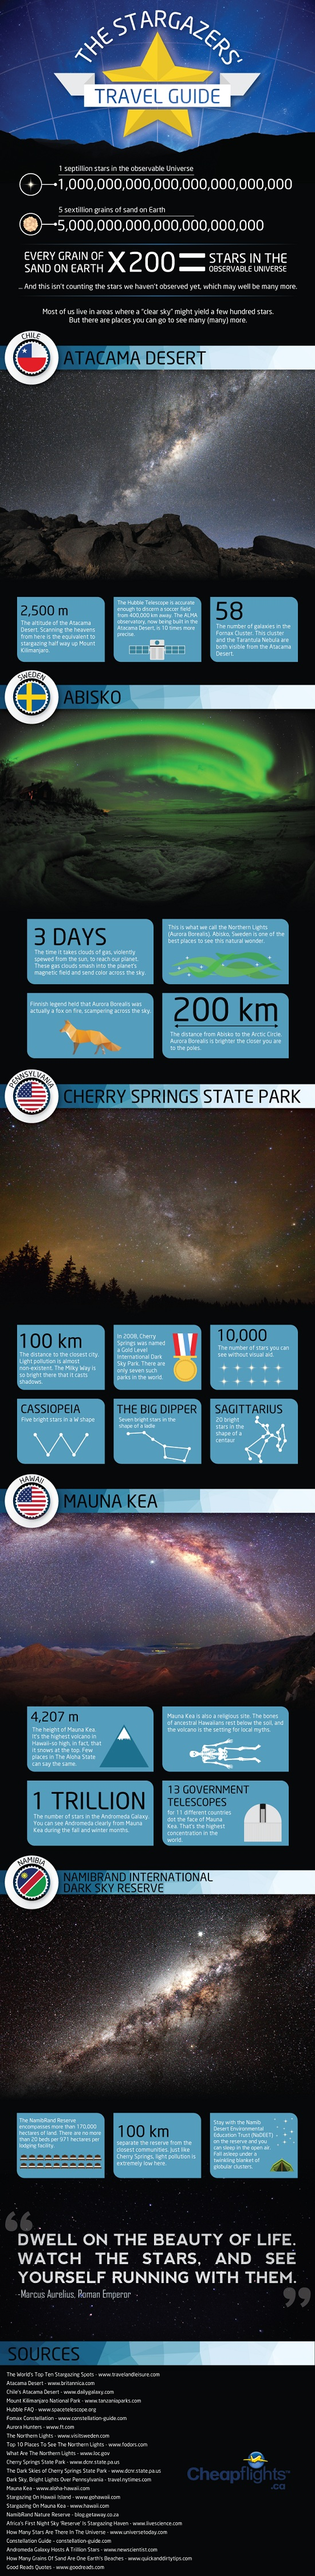 Best Places for Stargazing-Infographic